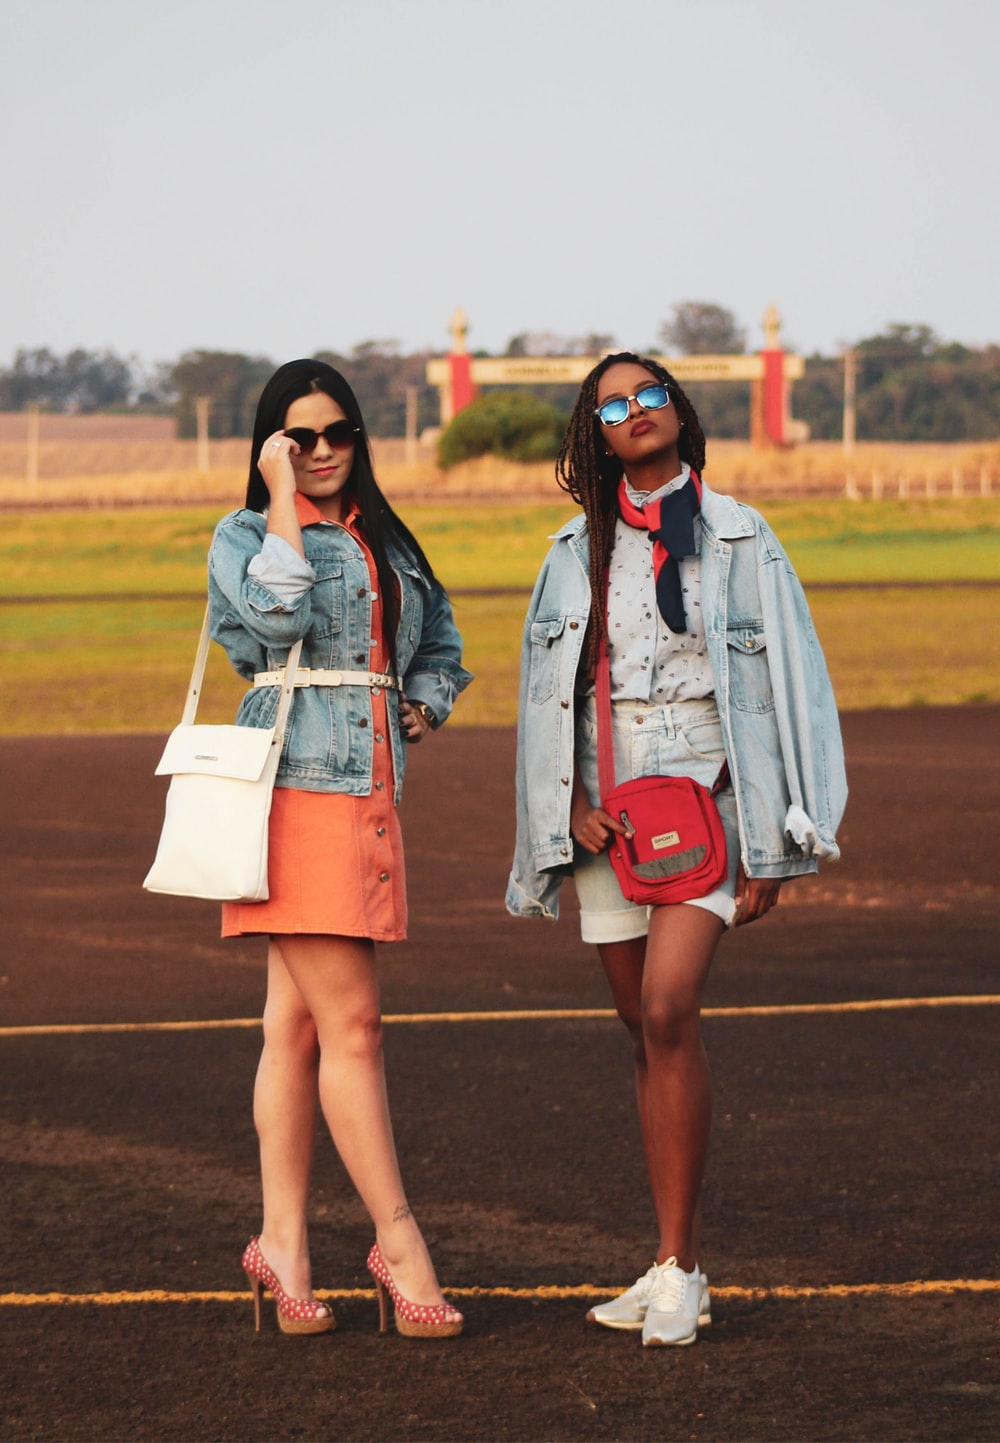 two women standing on sports field during daytime